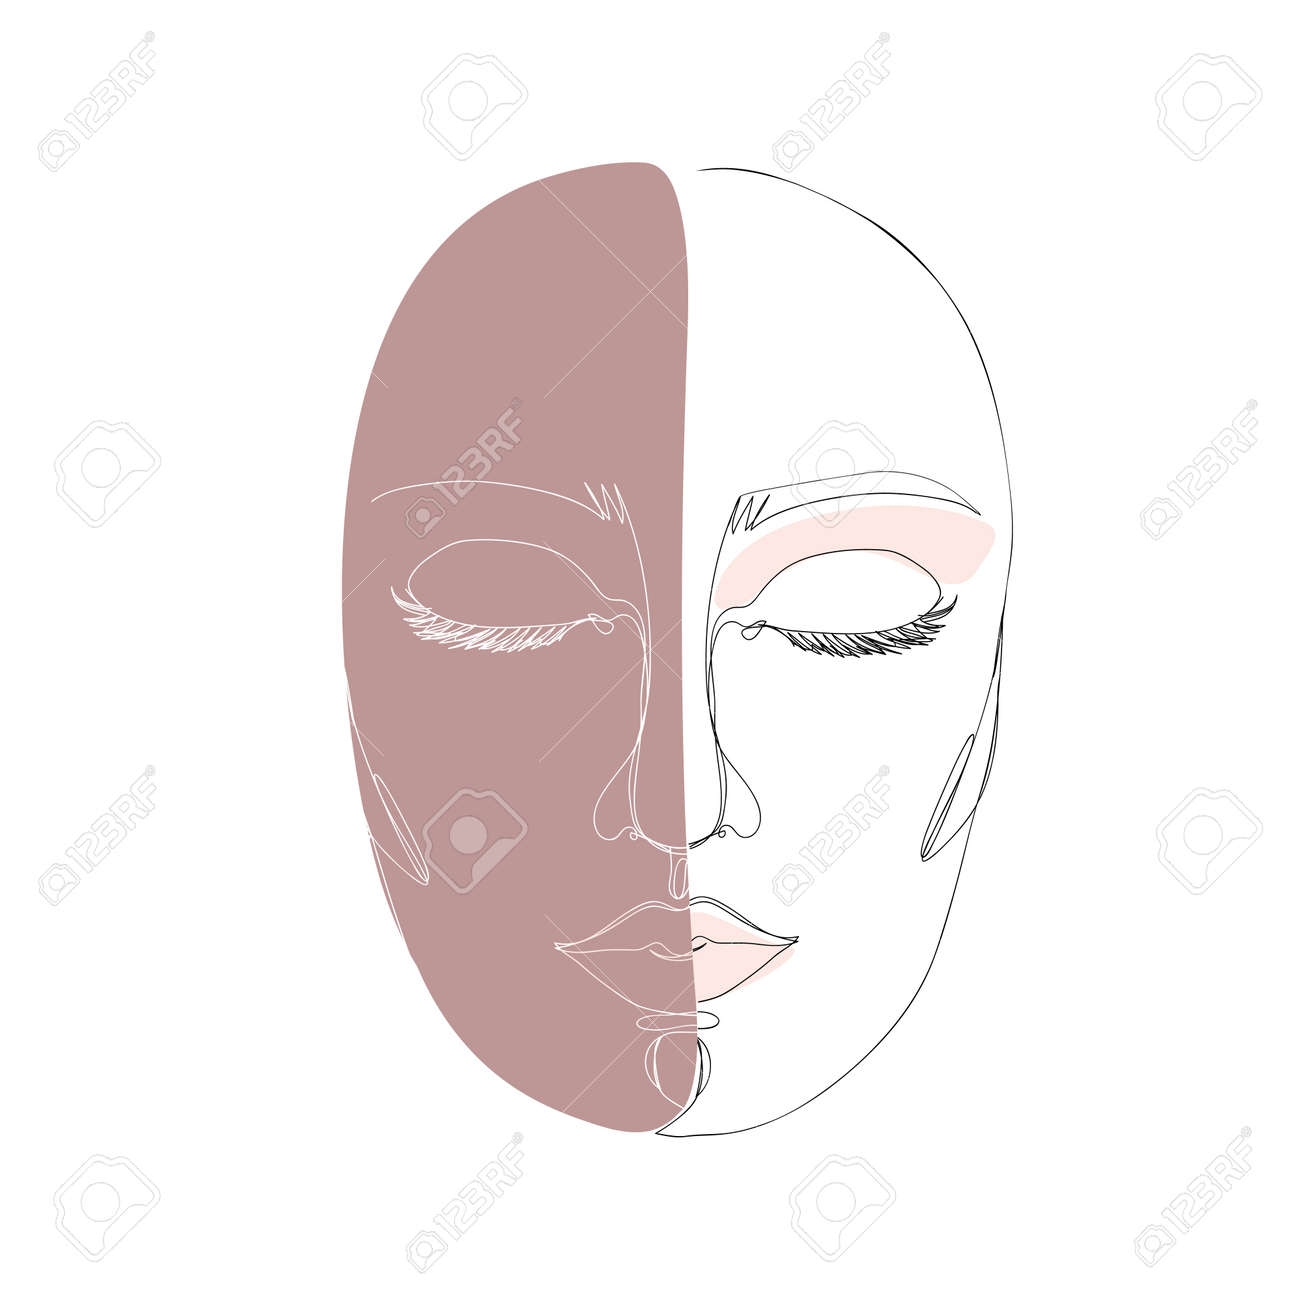 Abstract minimalistic linear sketch. Woman's face. Vector hand drawn illustration - 168291340